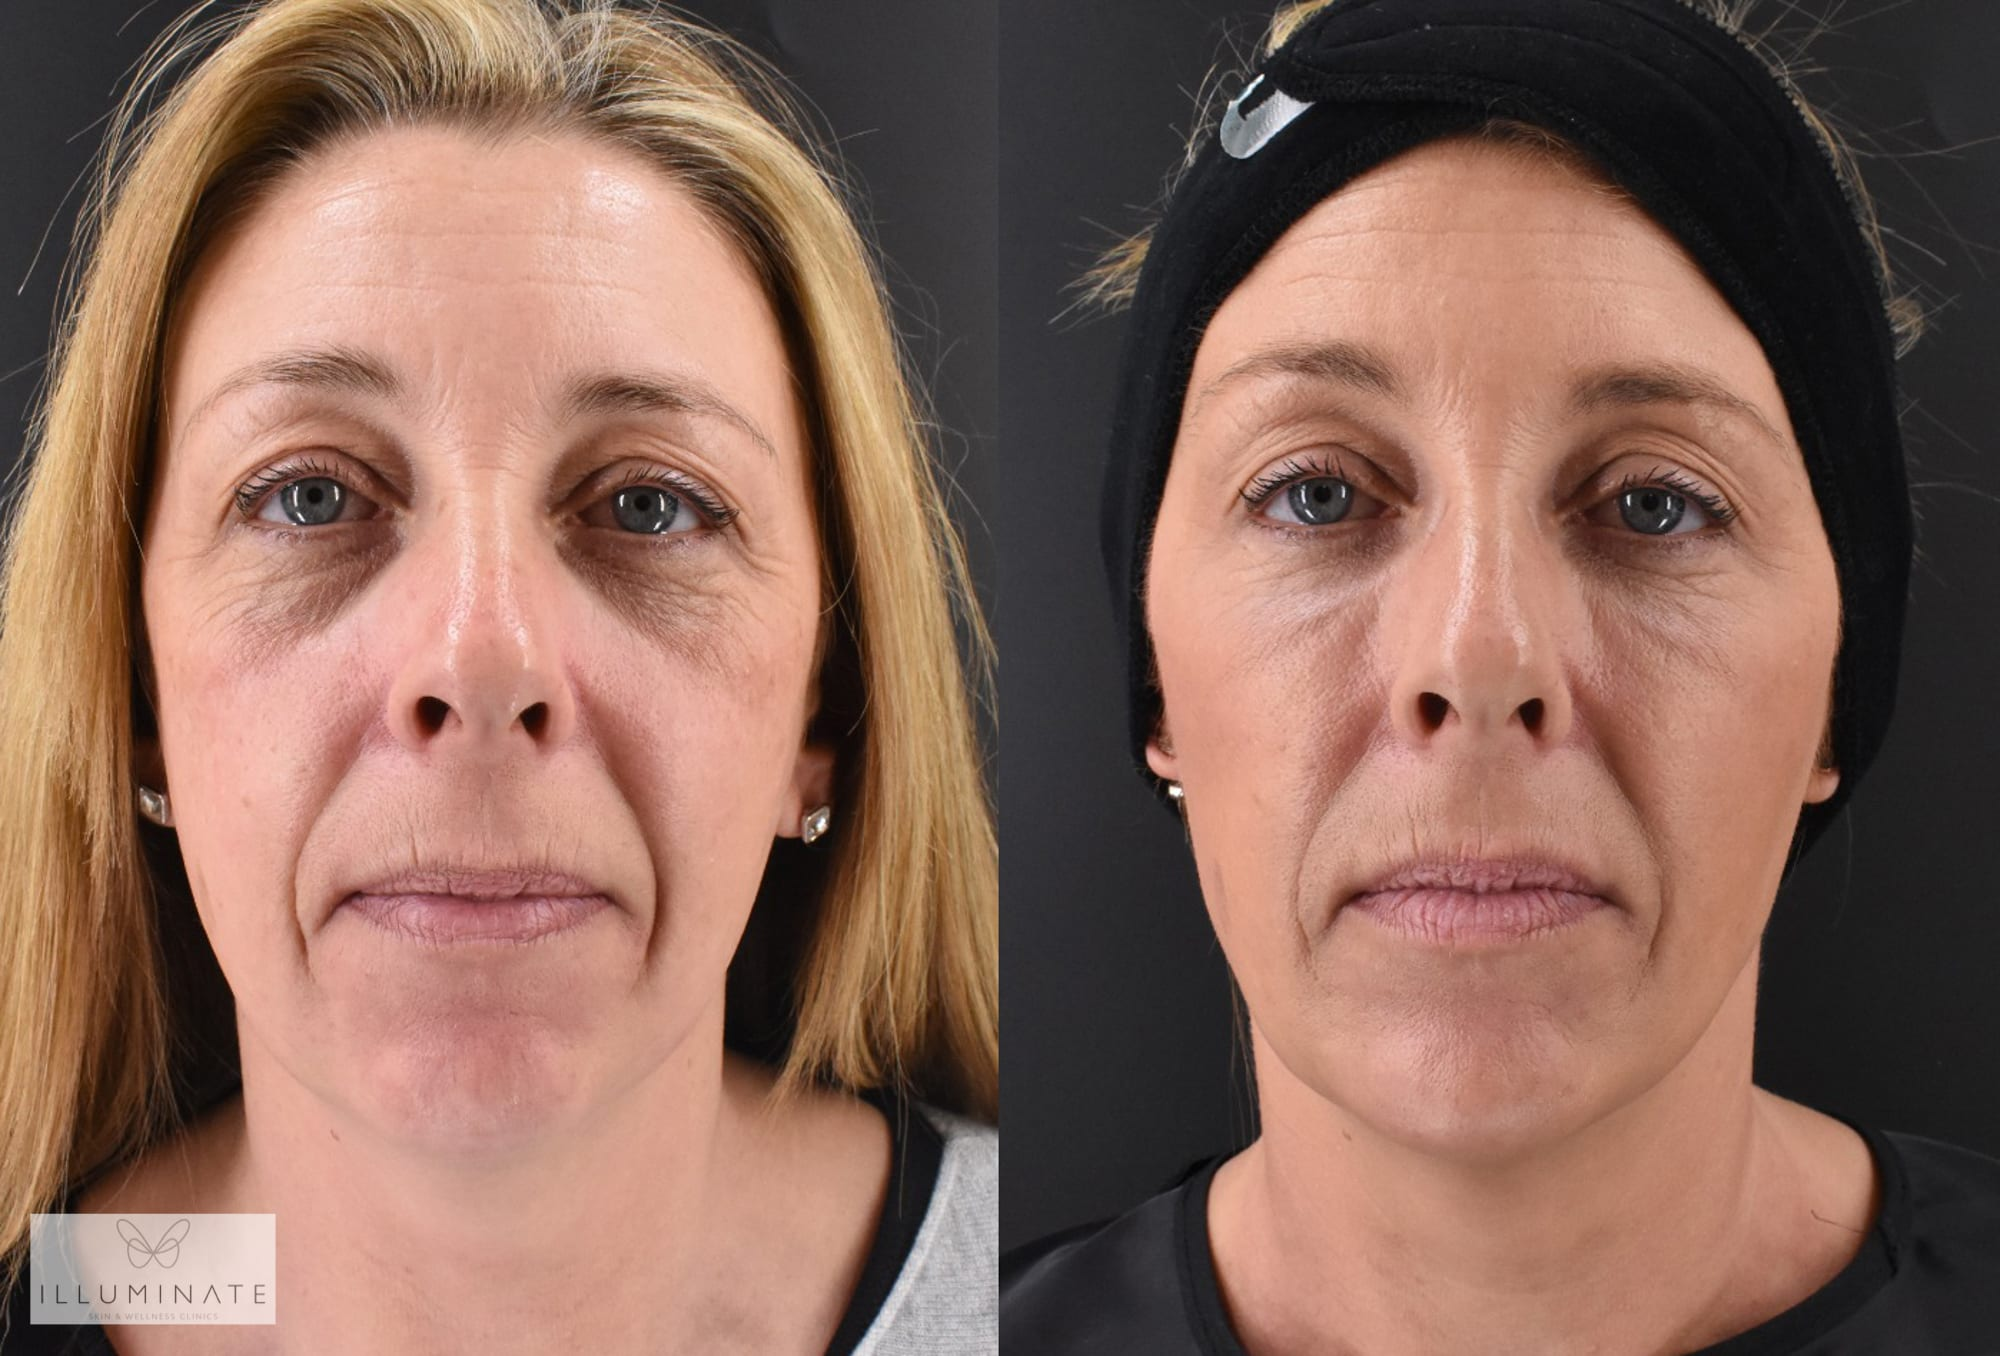 FAYE'S STORY: Illuminate patient shares her experiences of our new Shape & Sculpt treatment package